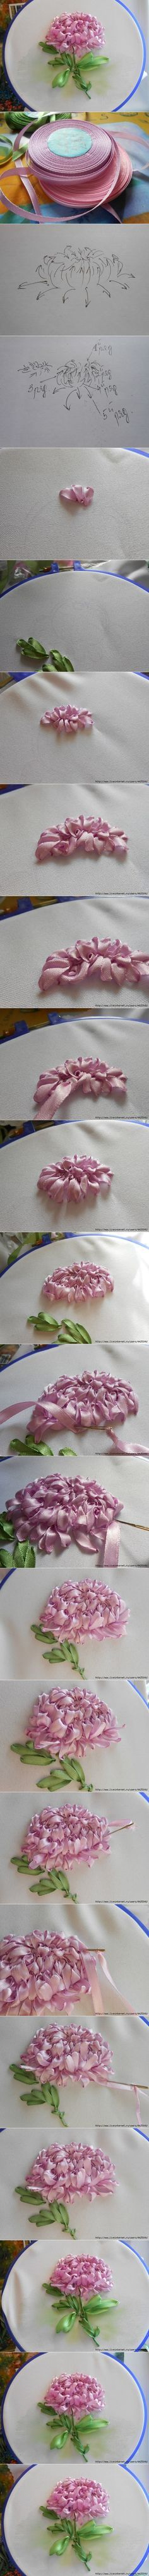 DIY Ribbon Embroidery Chrysanthemum | www.FabArtDIY.com LIKE Us on Facebook ==> https://www.facebook.com/FabArtDIY